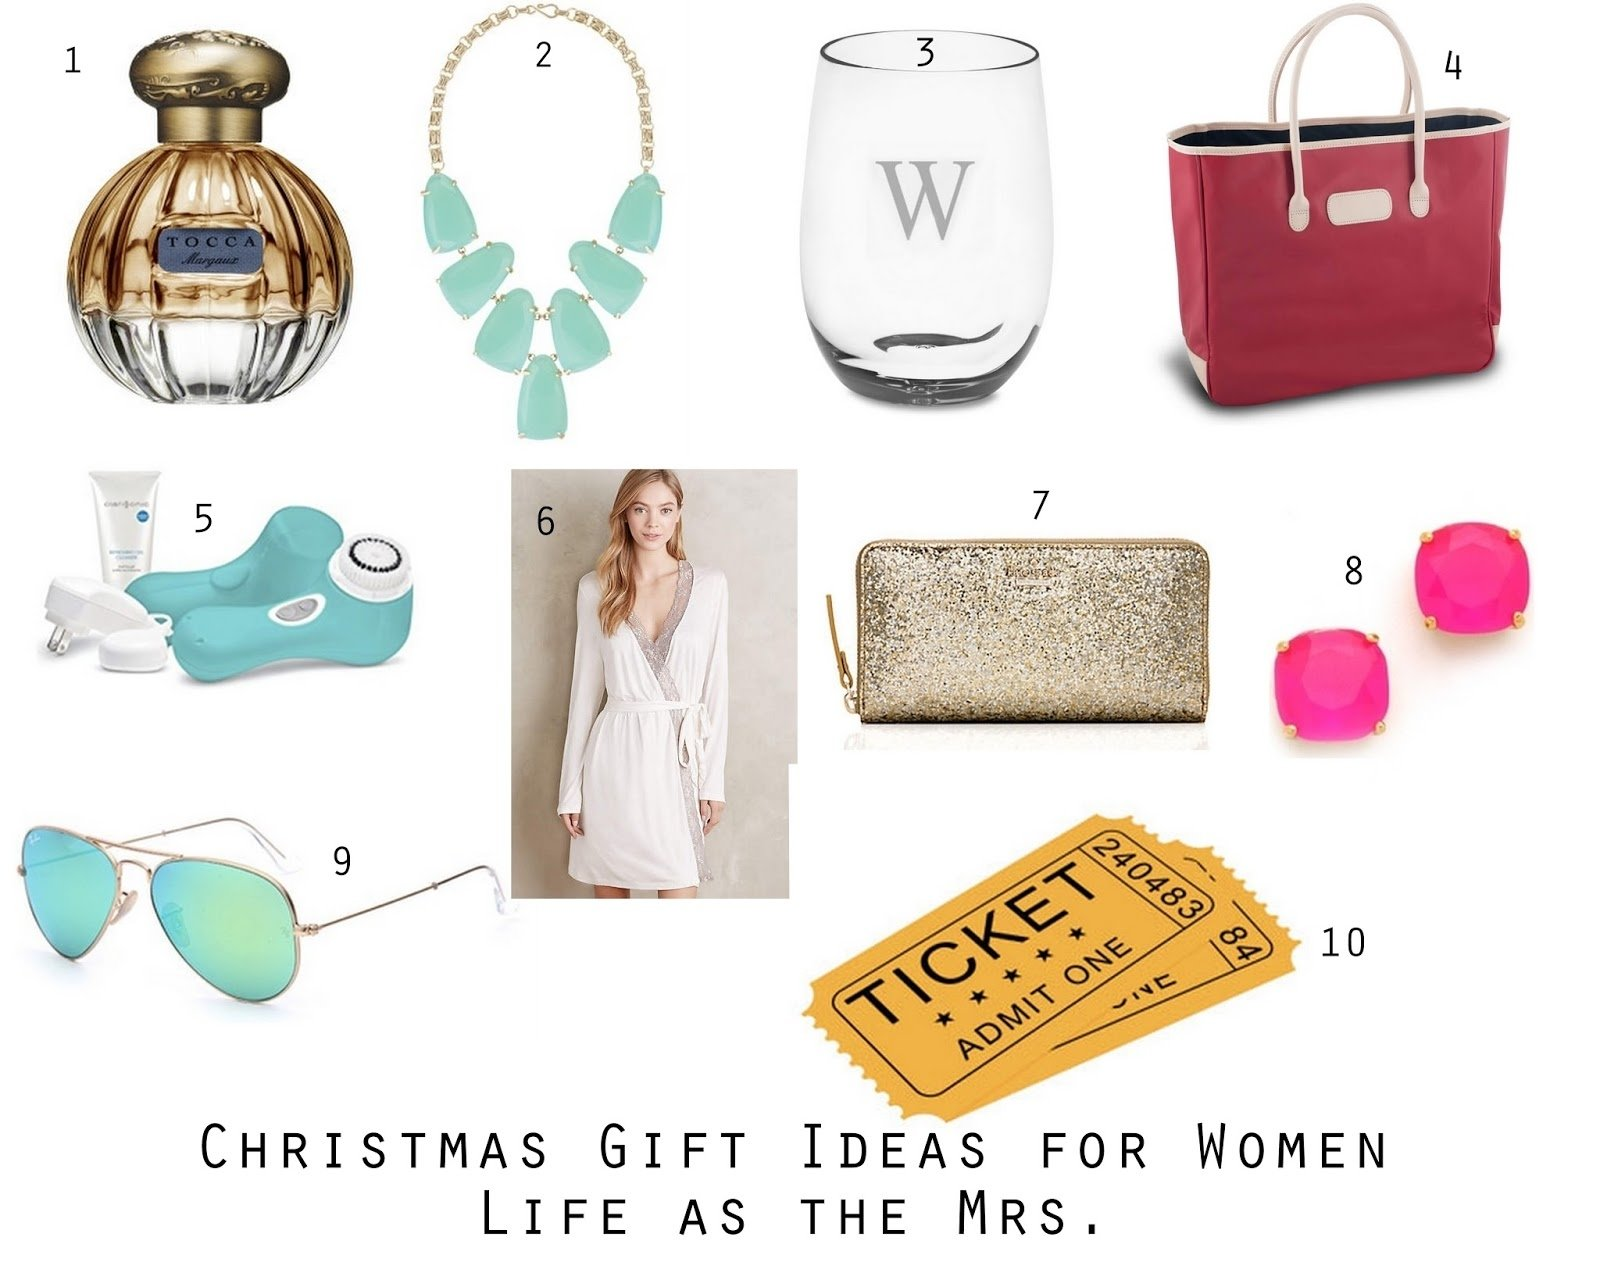 10 Beautiful Gift Ideas For Mother In Law life as the mrs thoughts for thursday christmas gift ideas for women 4 2020